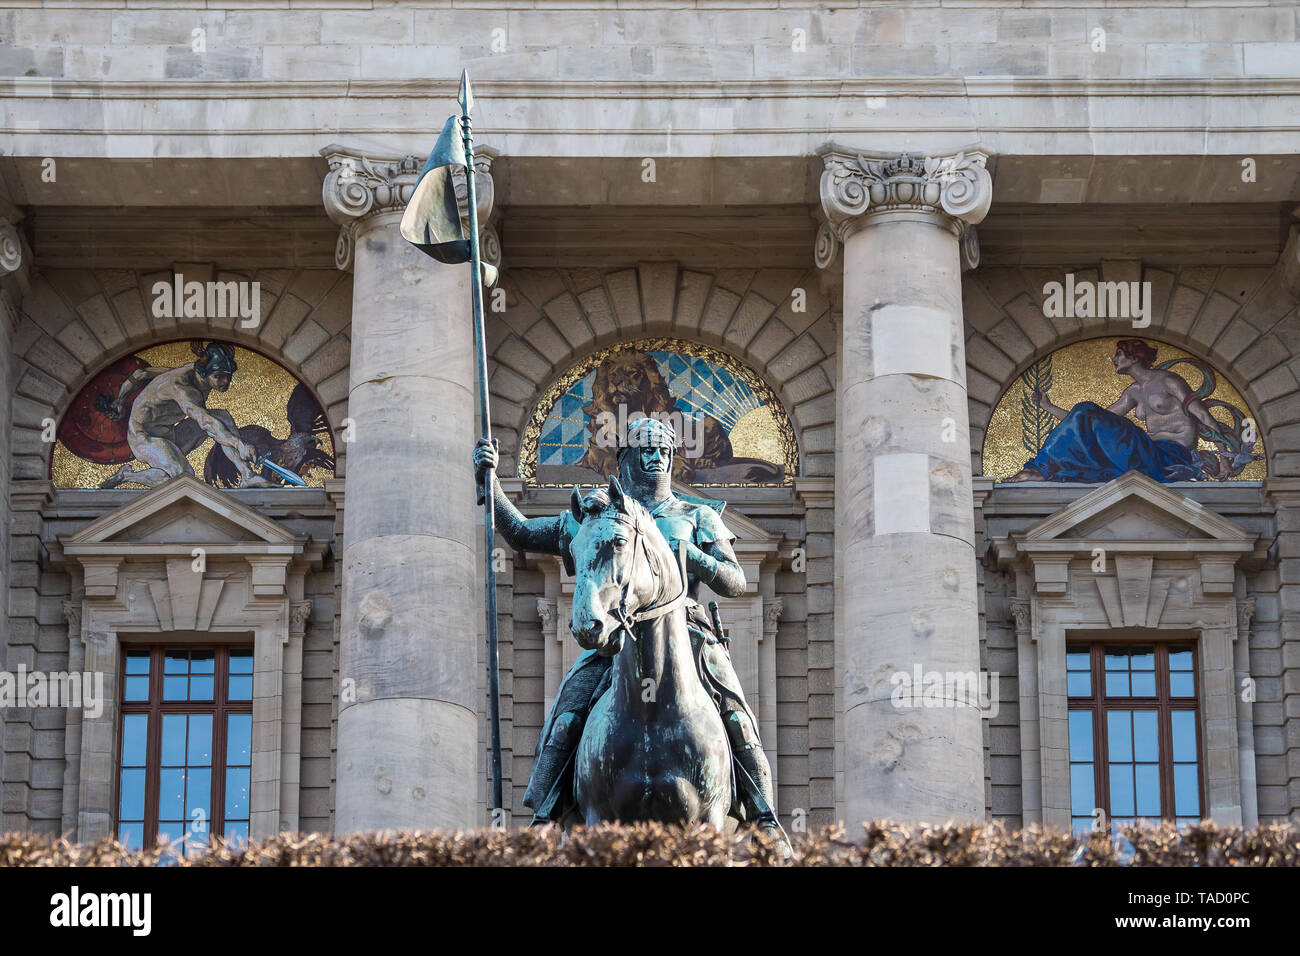 view of famous State chancellery - Staatskanzlei with war memorial in the German city center of the Bavarian capital. - Stock Image